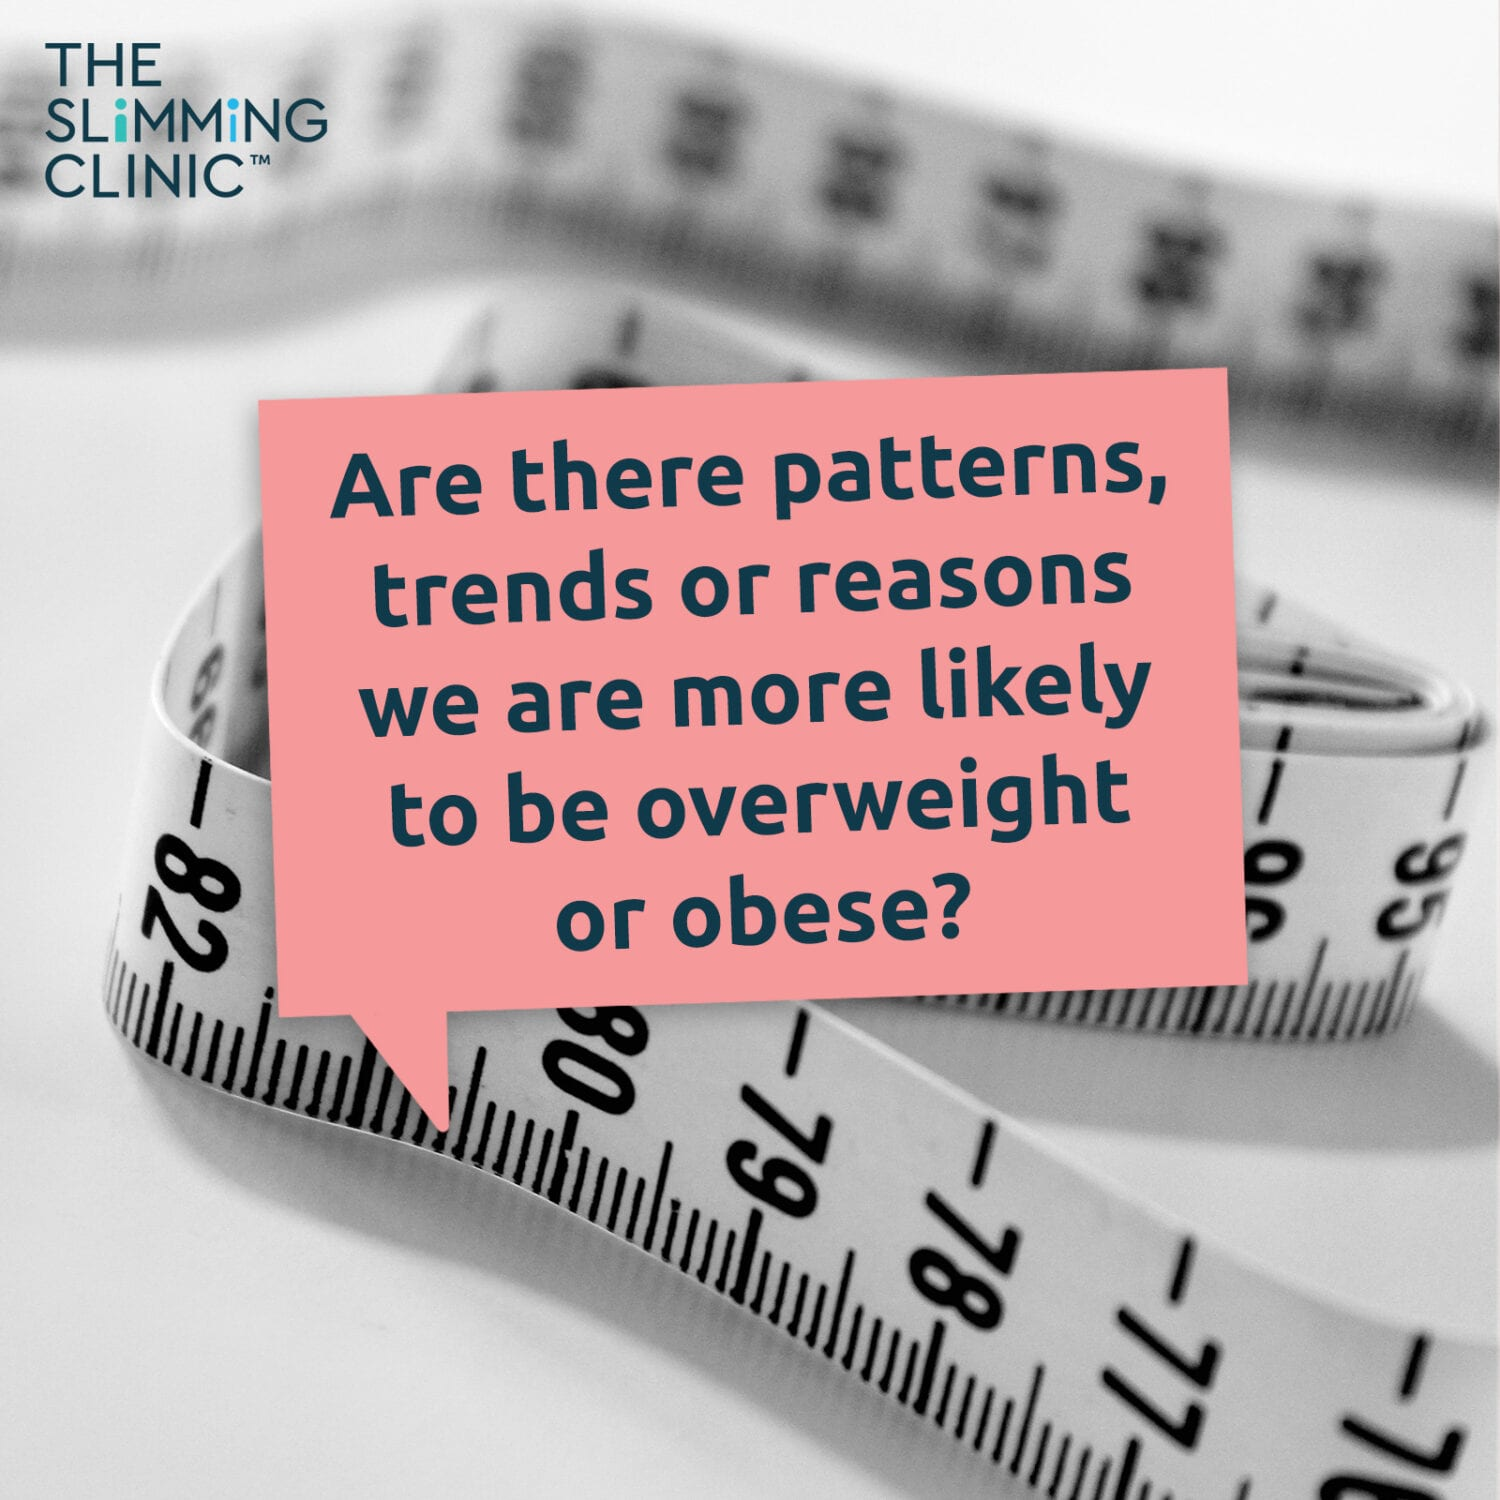 Do certain factors make us more likely to be obese or overweight?